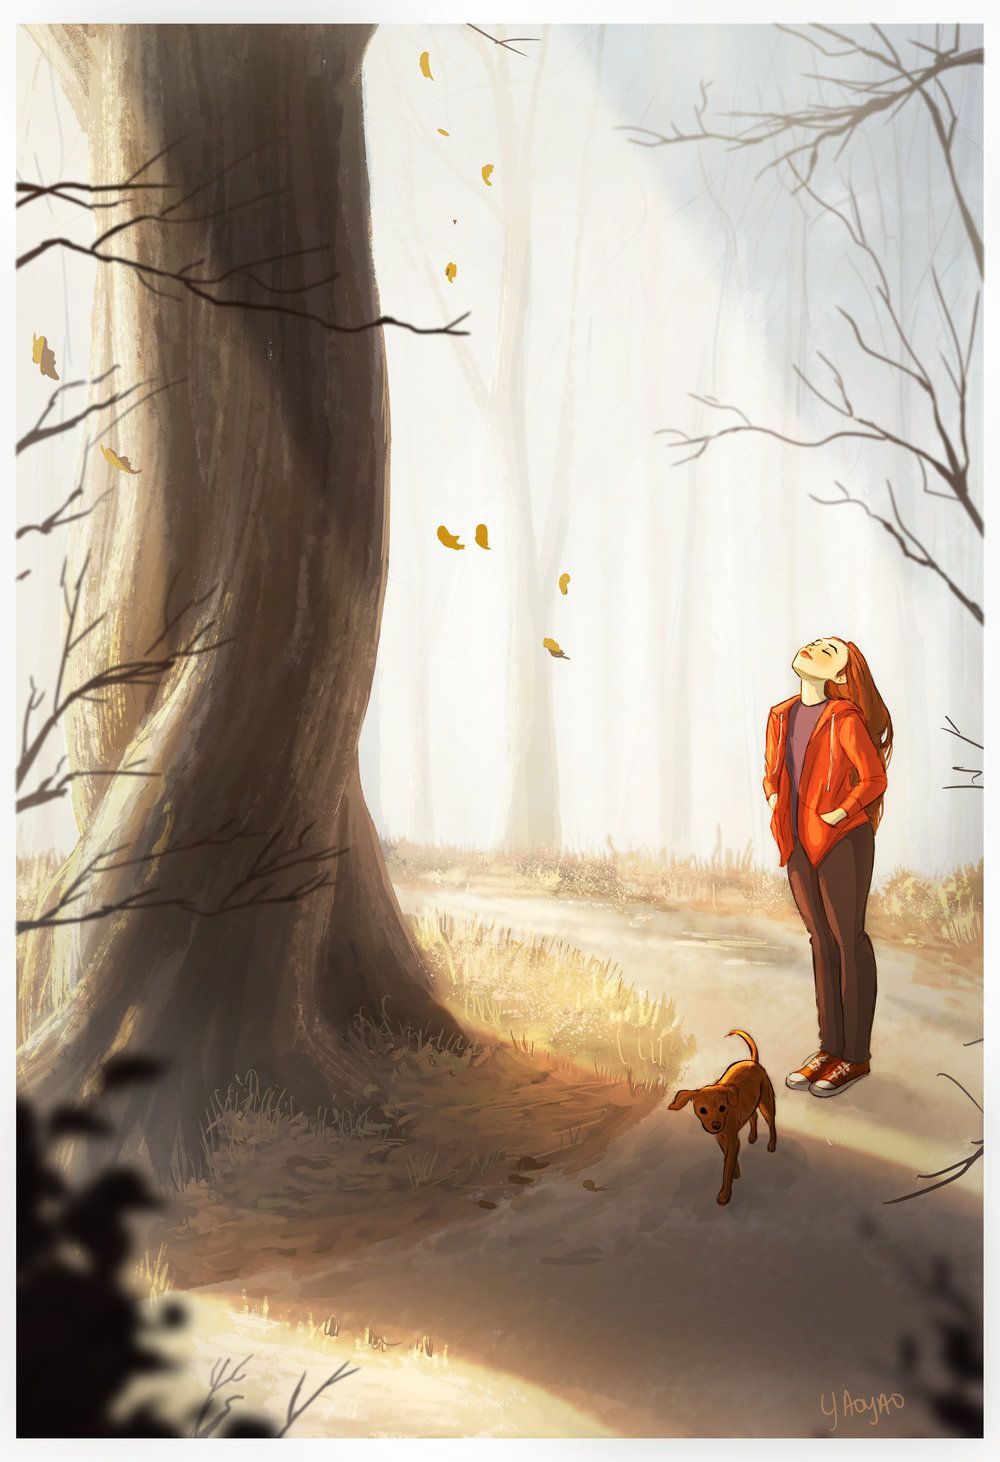 Autumn Is My Time I Am Most Radiant And Full Of Energy When The Leaves Are Falling And There Is A Ghost Of Change In The Ai Animation Art Girl And Dog